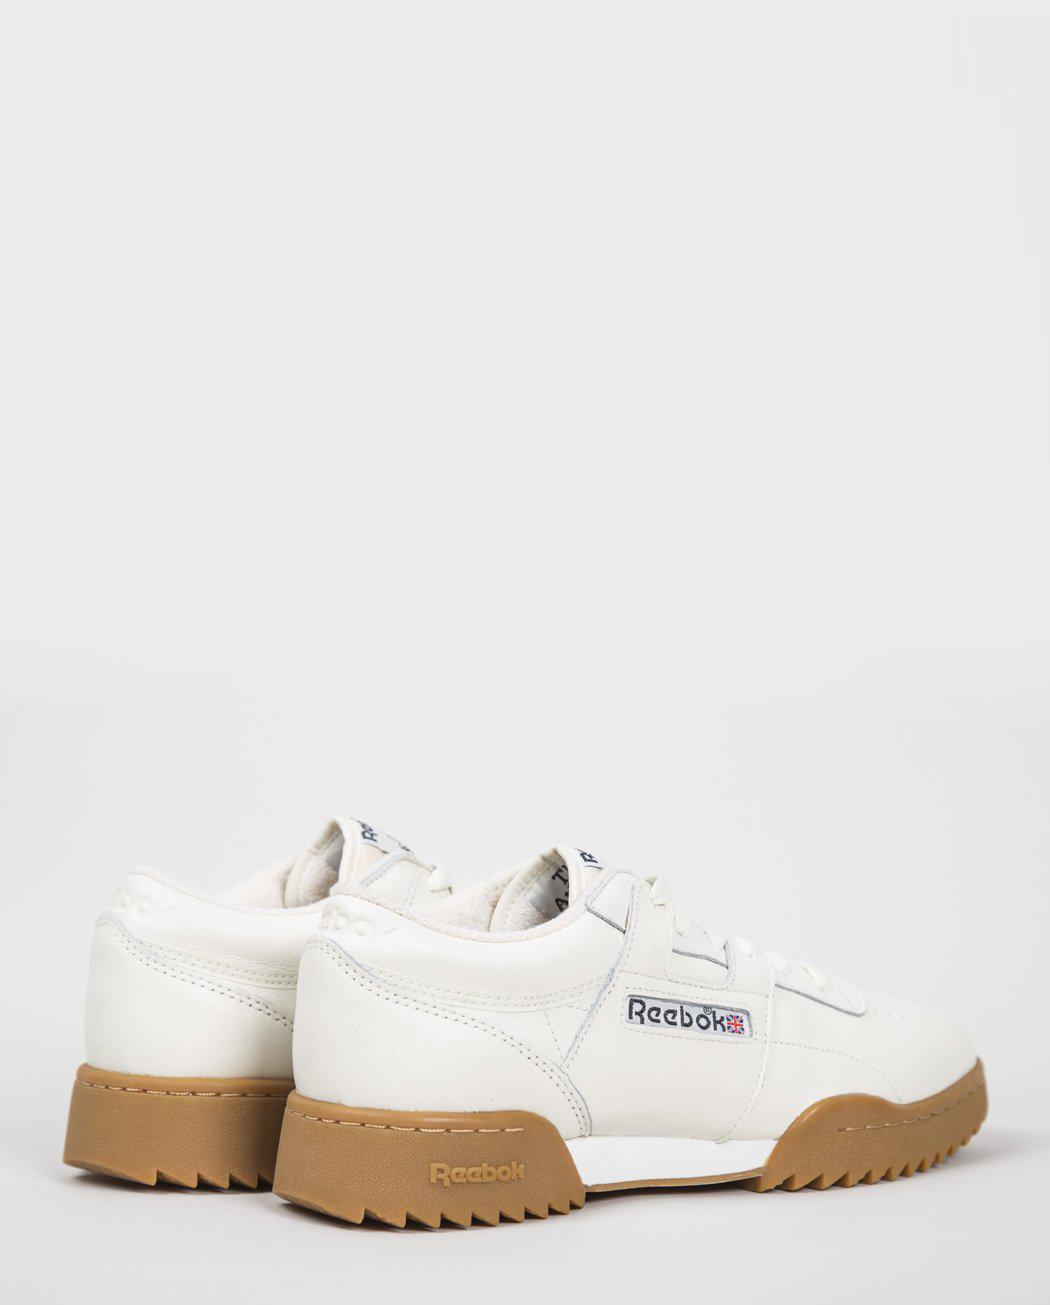 0692a262bd2 Lyst - Reebok Workout Clean Ripple (bs8929) in White for Men